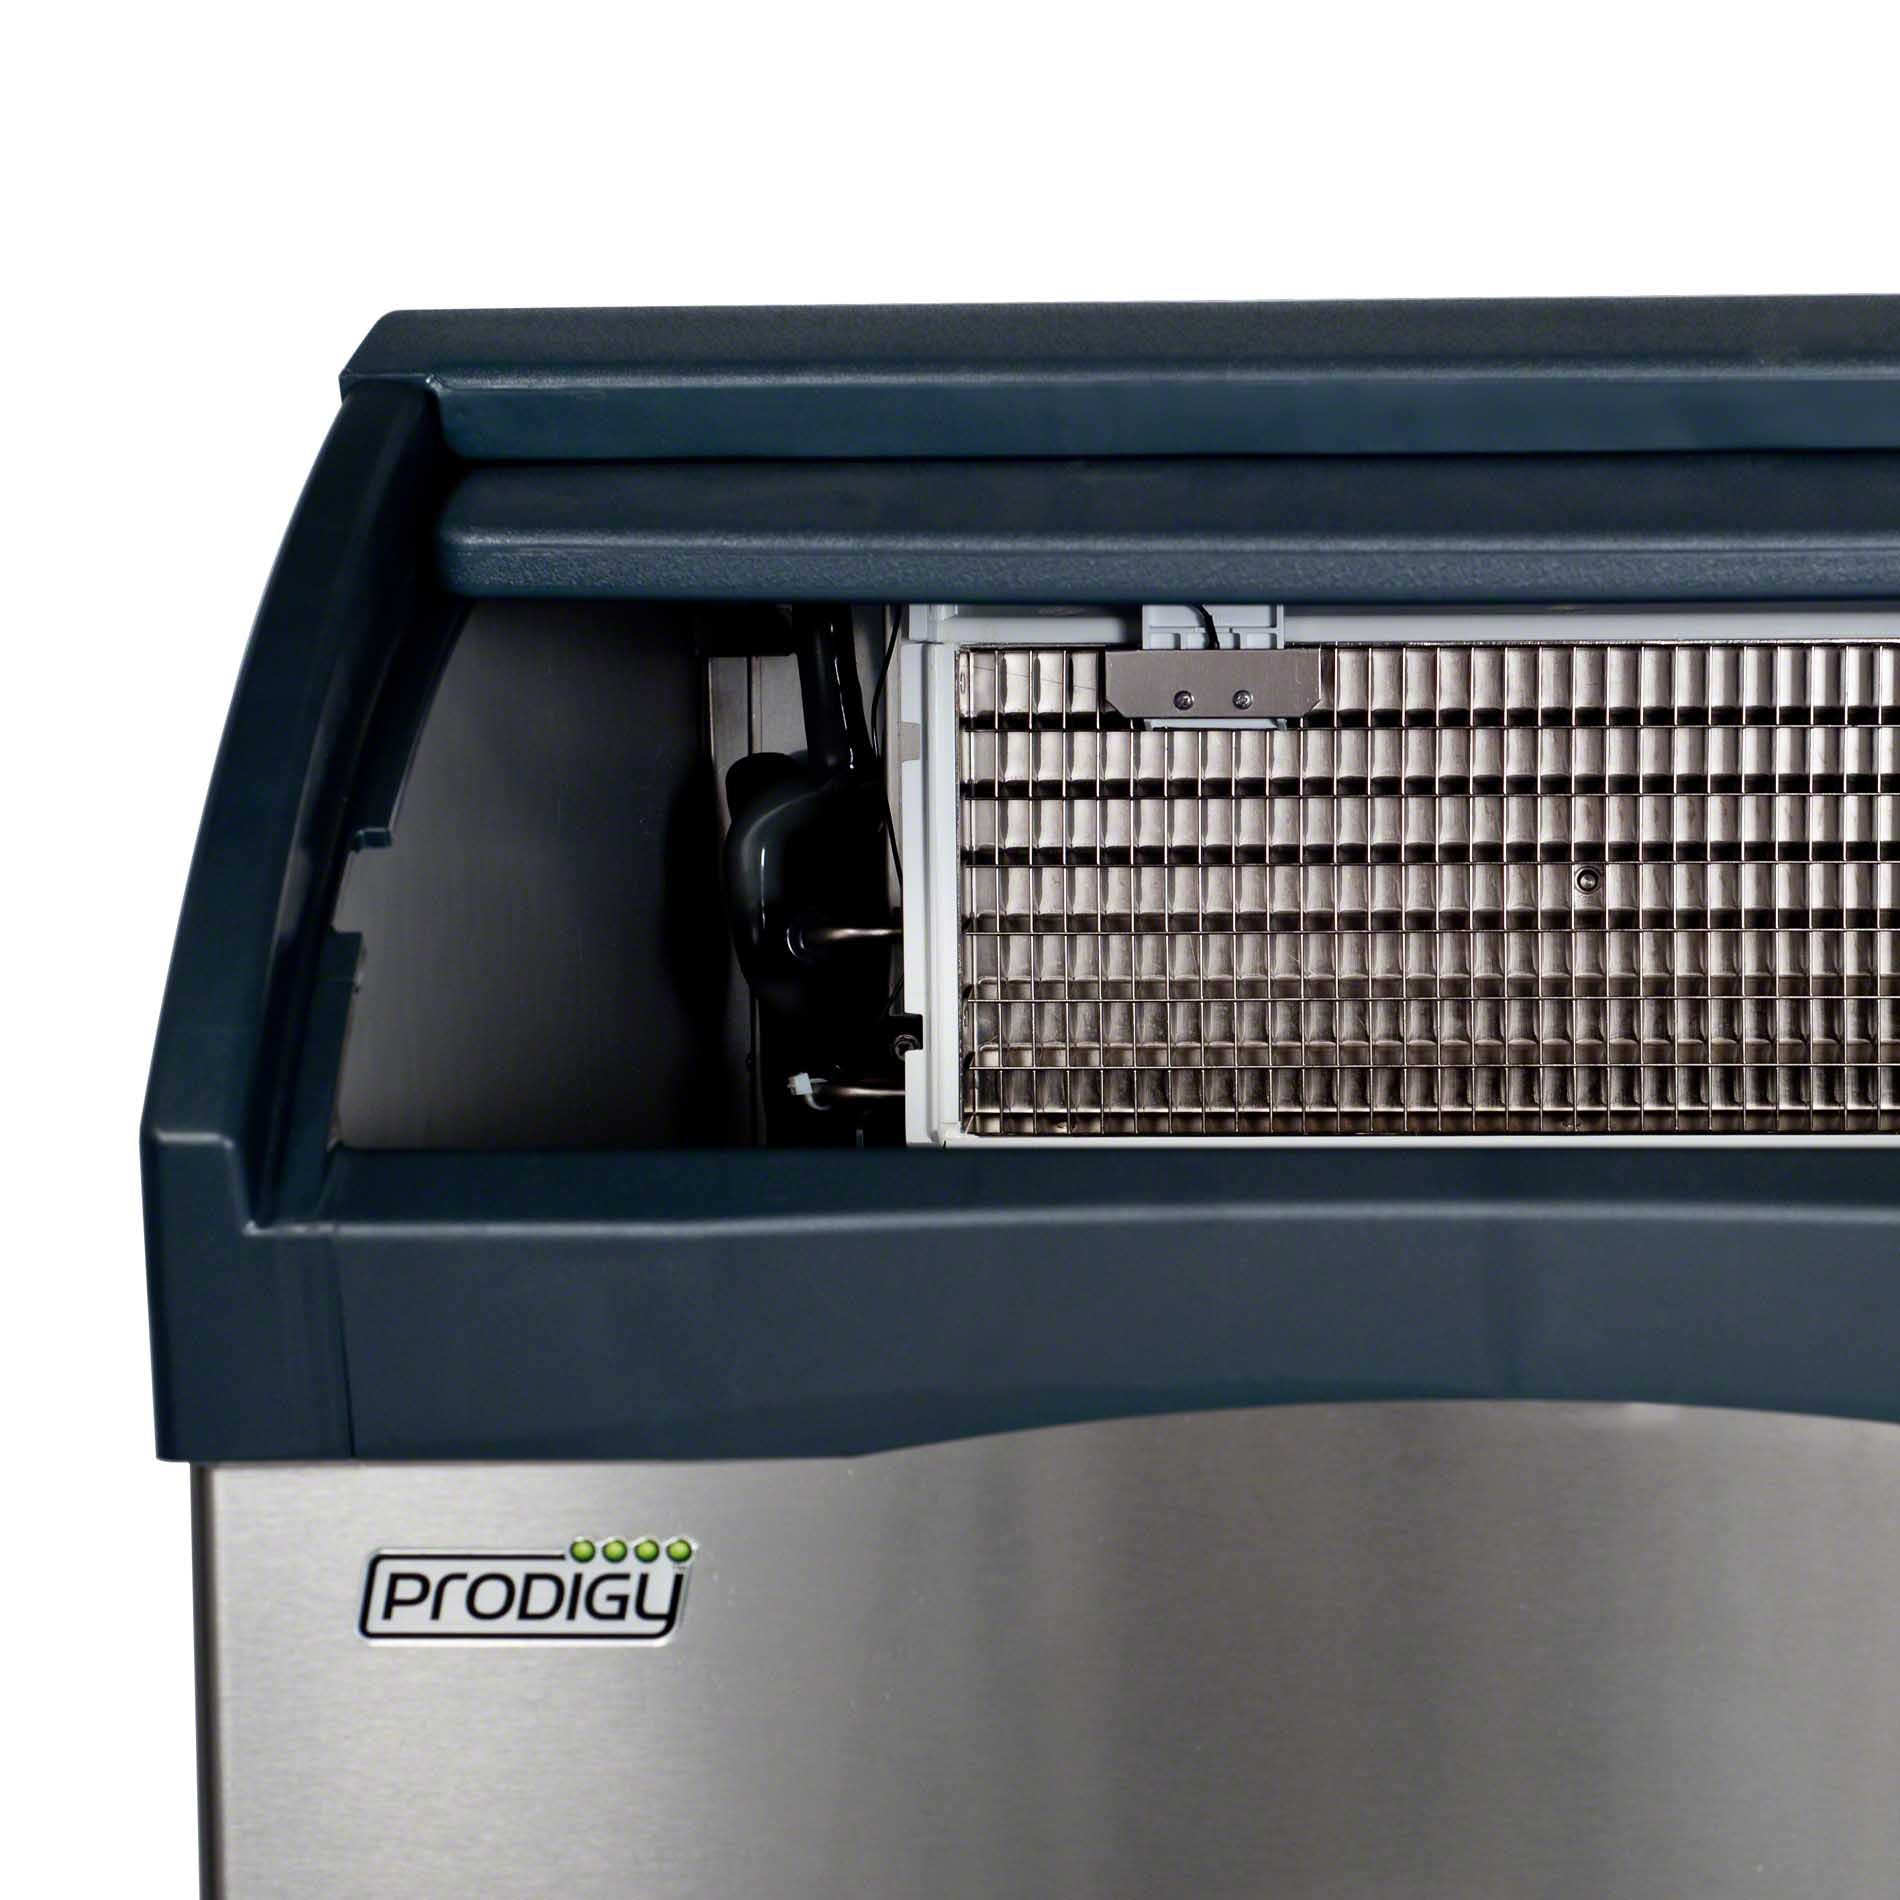 Scotsman - CU1526SW-1A 175 lb Self-Contained Cube Ice Machine - Prodigy® Series Ice machine sold by Food Service Warehouse